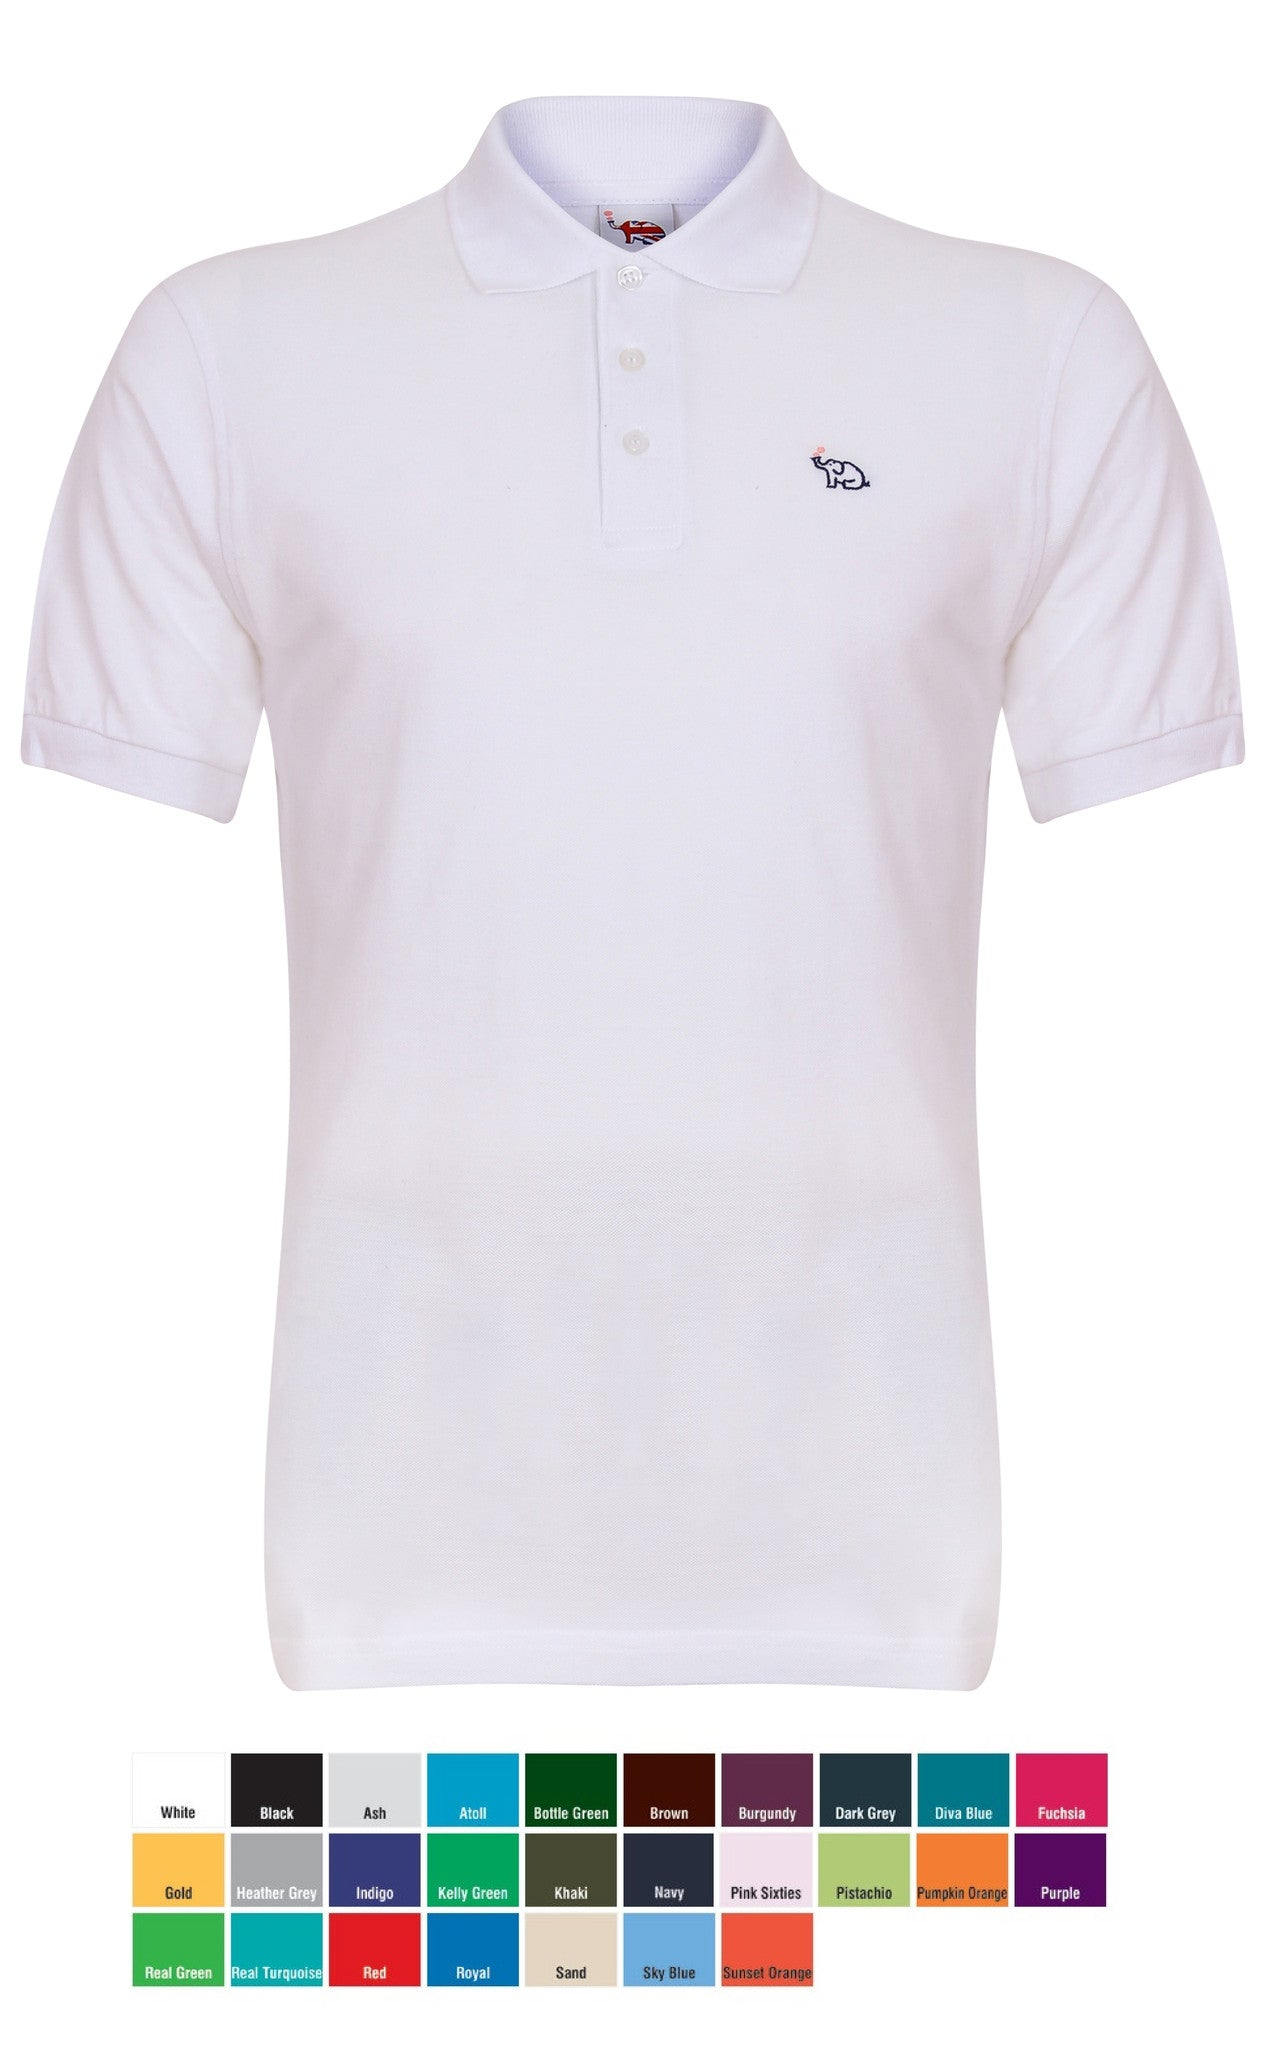 e176570ec Polo Shirt Design Logo - DREAMWORKS